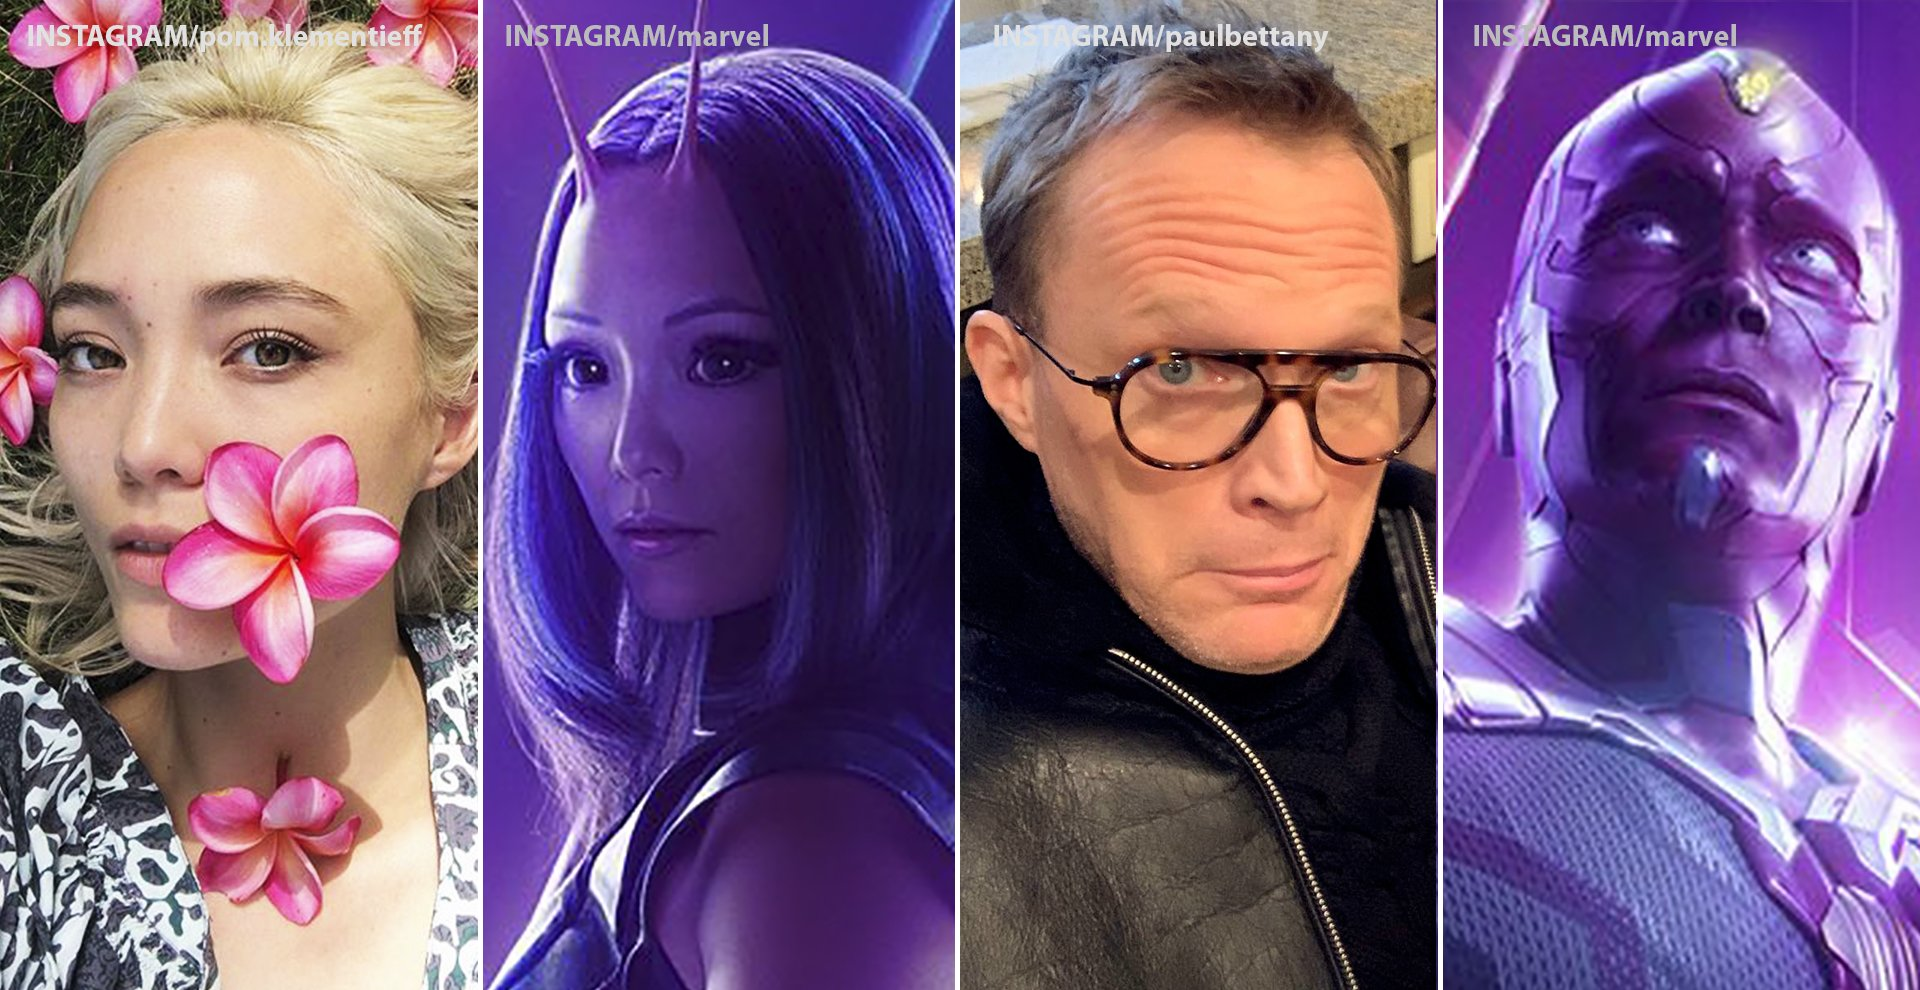 Dazzling Transformations that Marvel Stars Go Through For the Movies